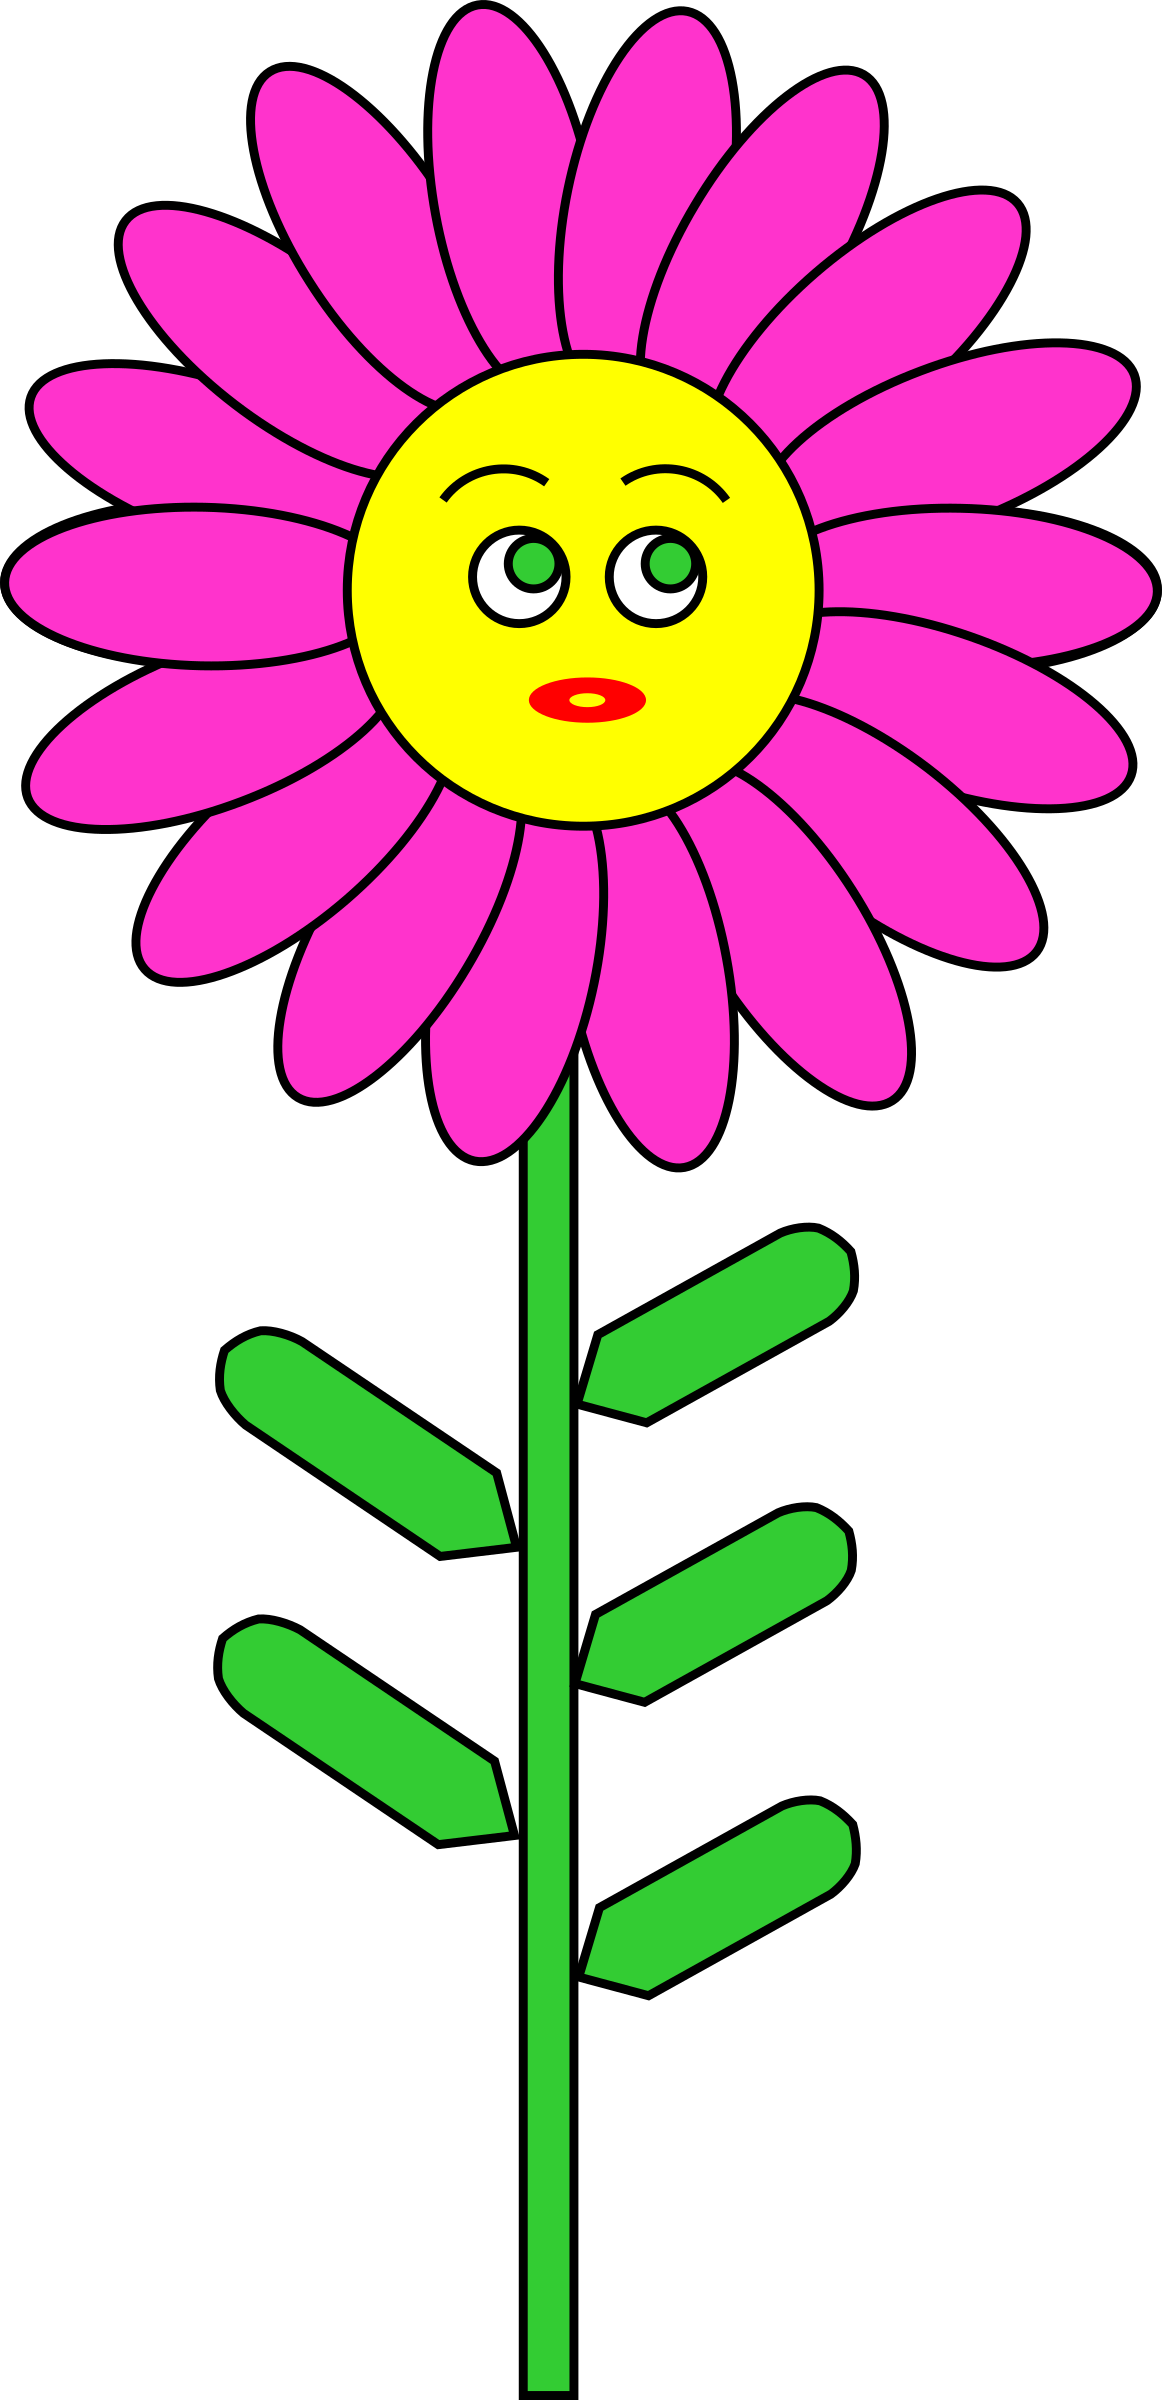 Smile clipart purple. Flower with big image